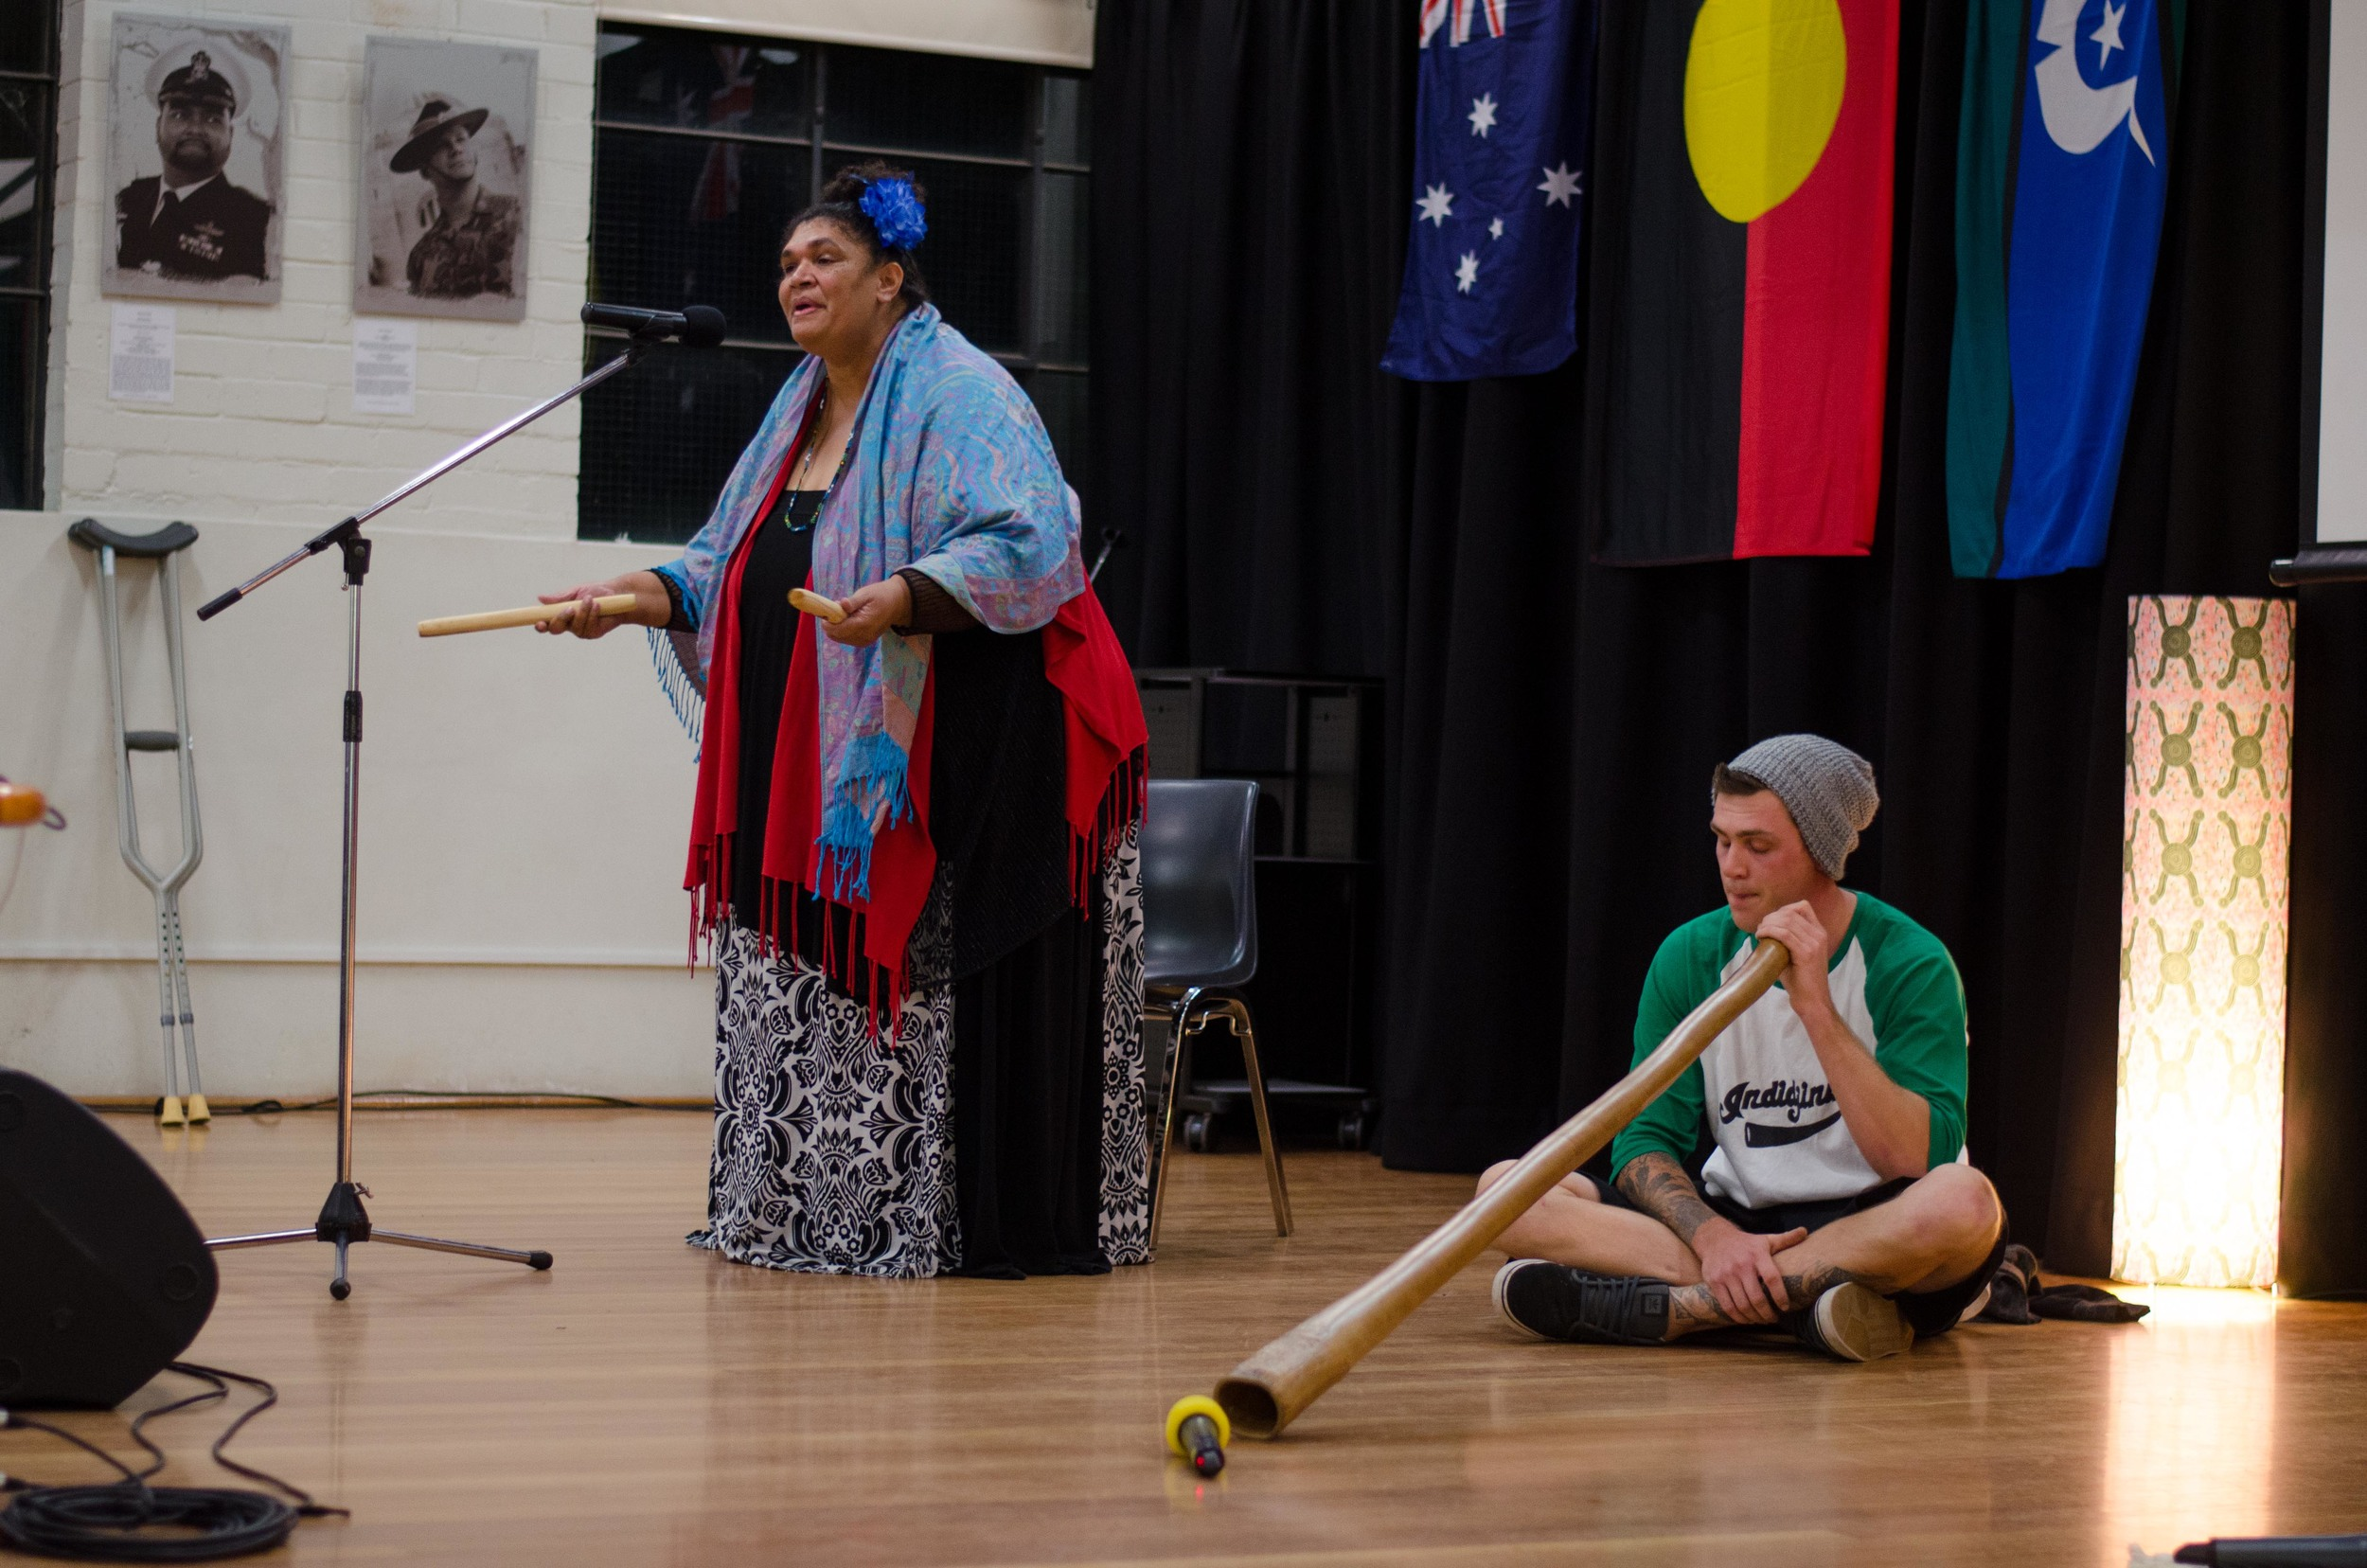 June 3rd Mabo Day at Redfern Community Centre: Mirror Child (Luana Pitt) Opening Performance of her song Mother Earth, Didgeridoo by Jamie